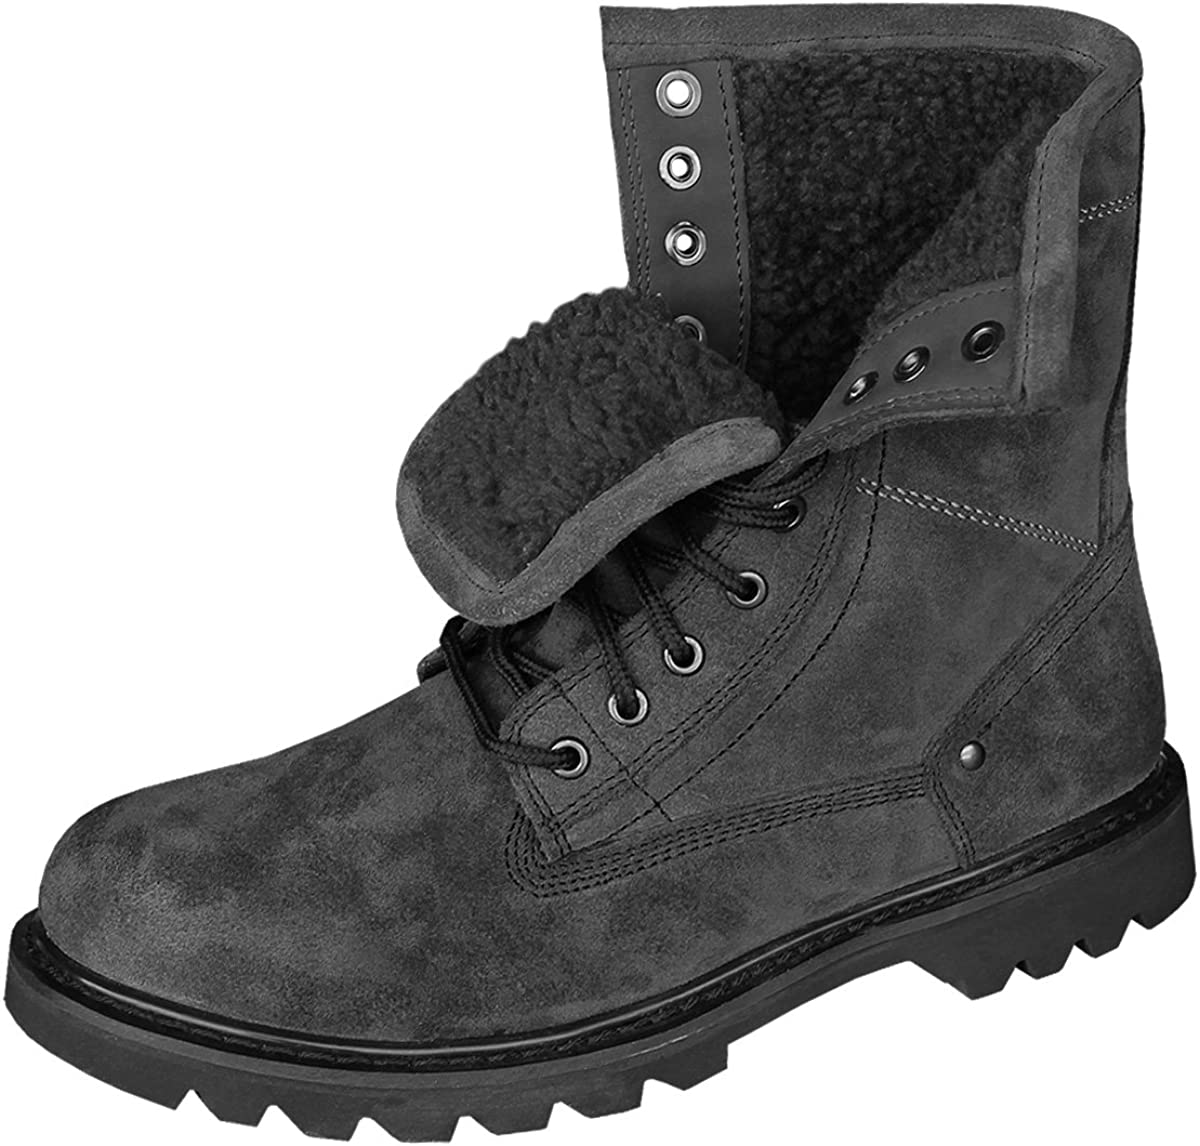 Brandit Gladstone Max 74% New mail order OFF Boots Anthracite